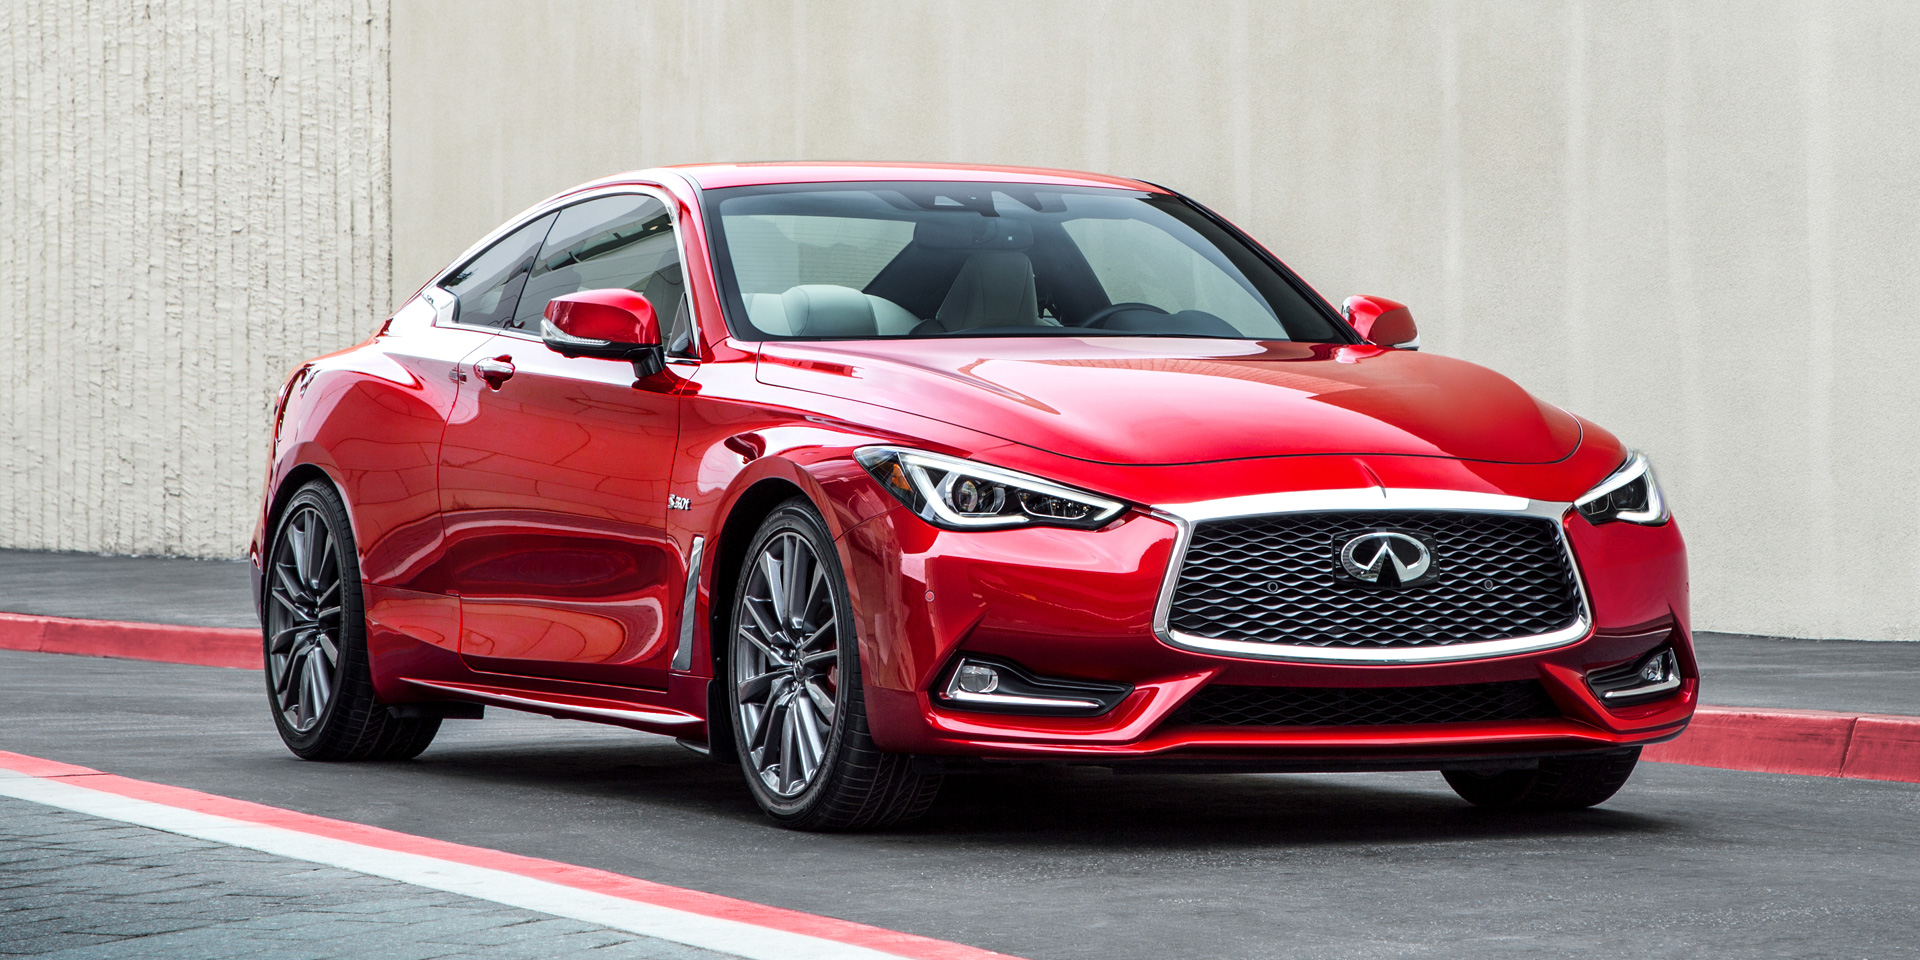 2019 Infiniti Q60 Vehicles On Display Chicago Auto Show